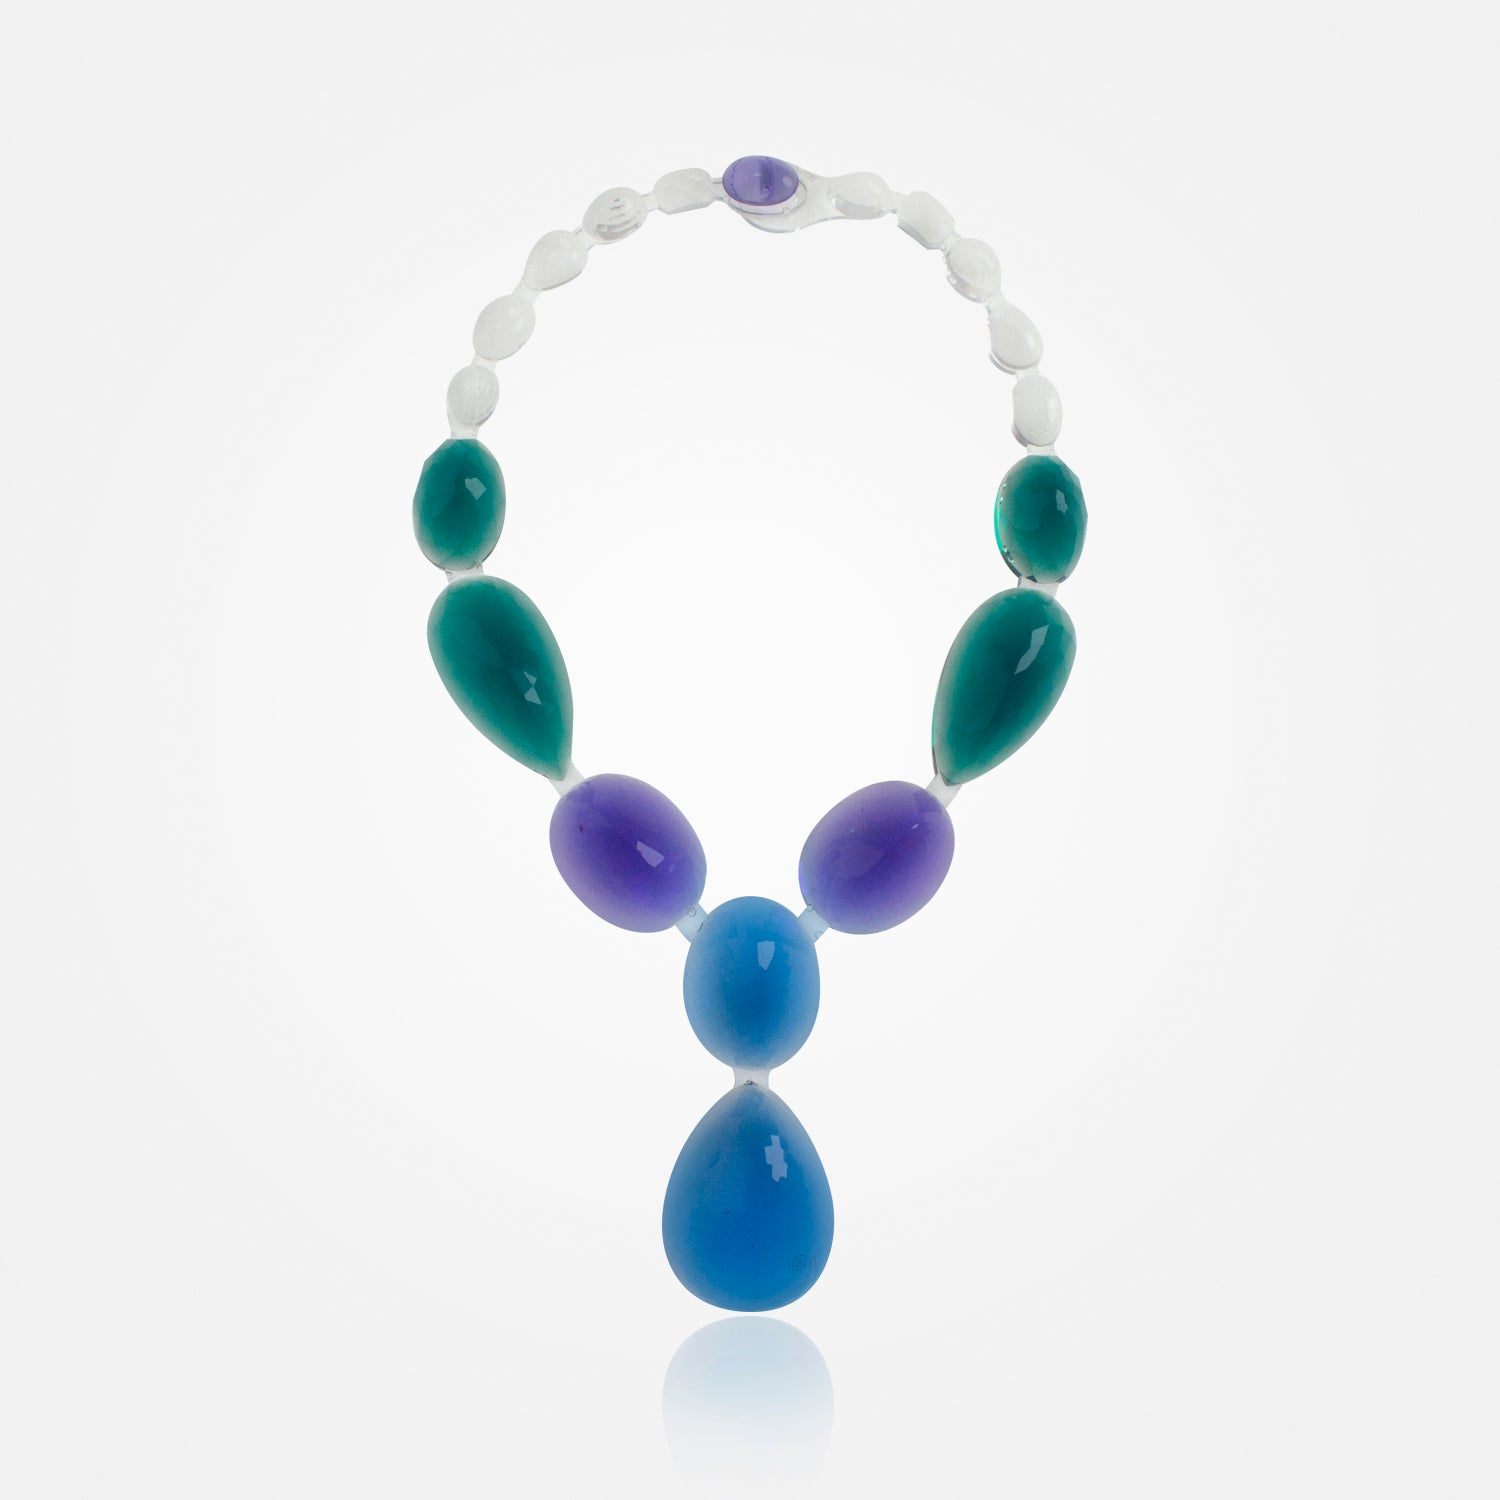 Handmade Crystalline Aqua Necklace by Corsi